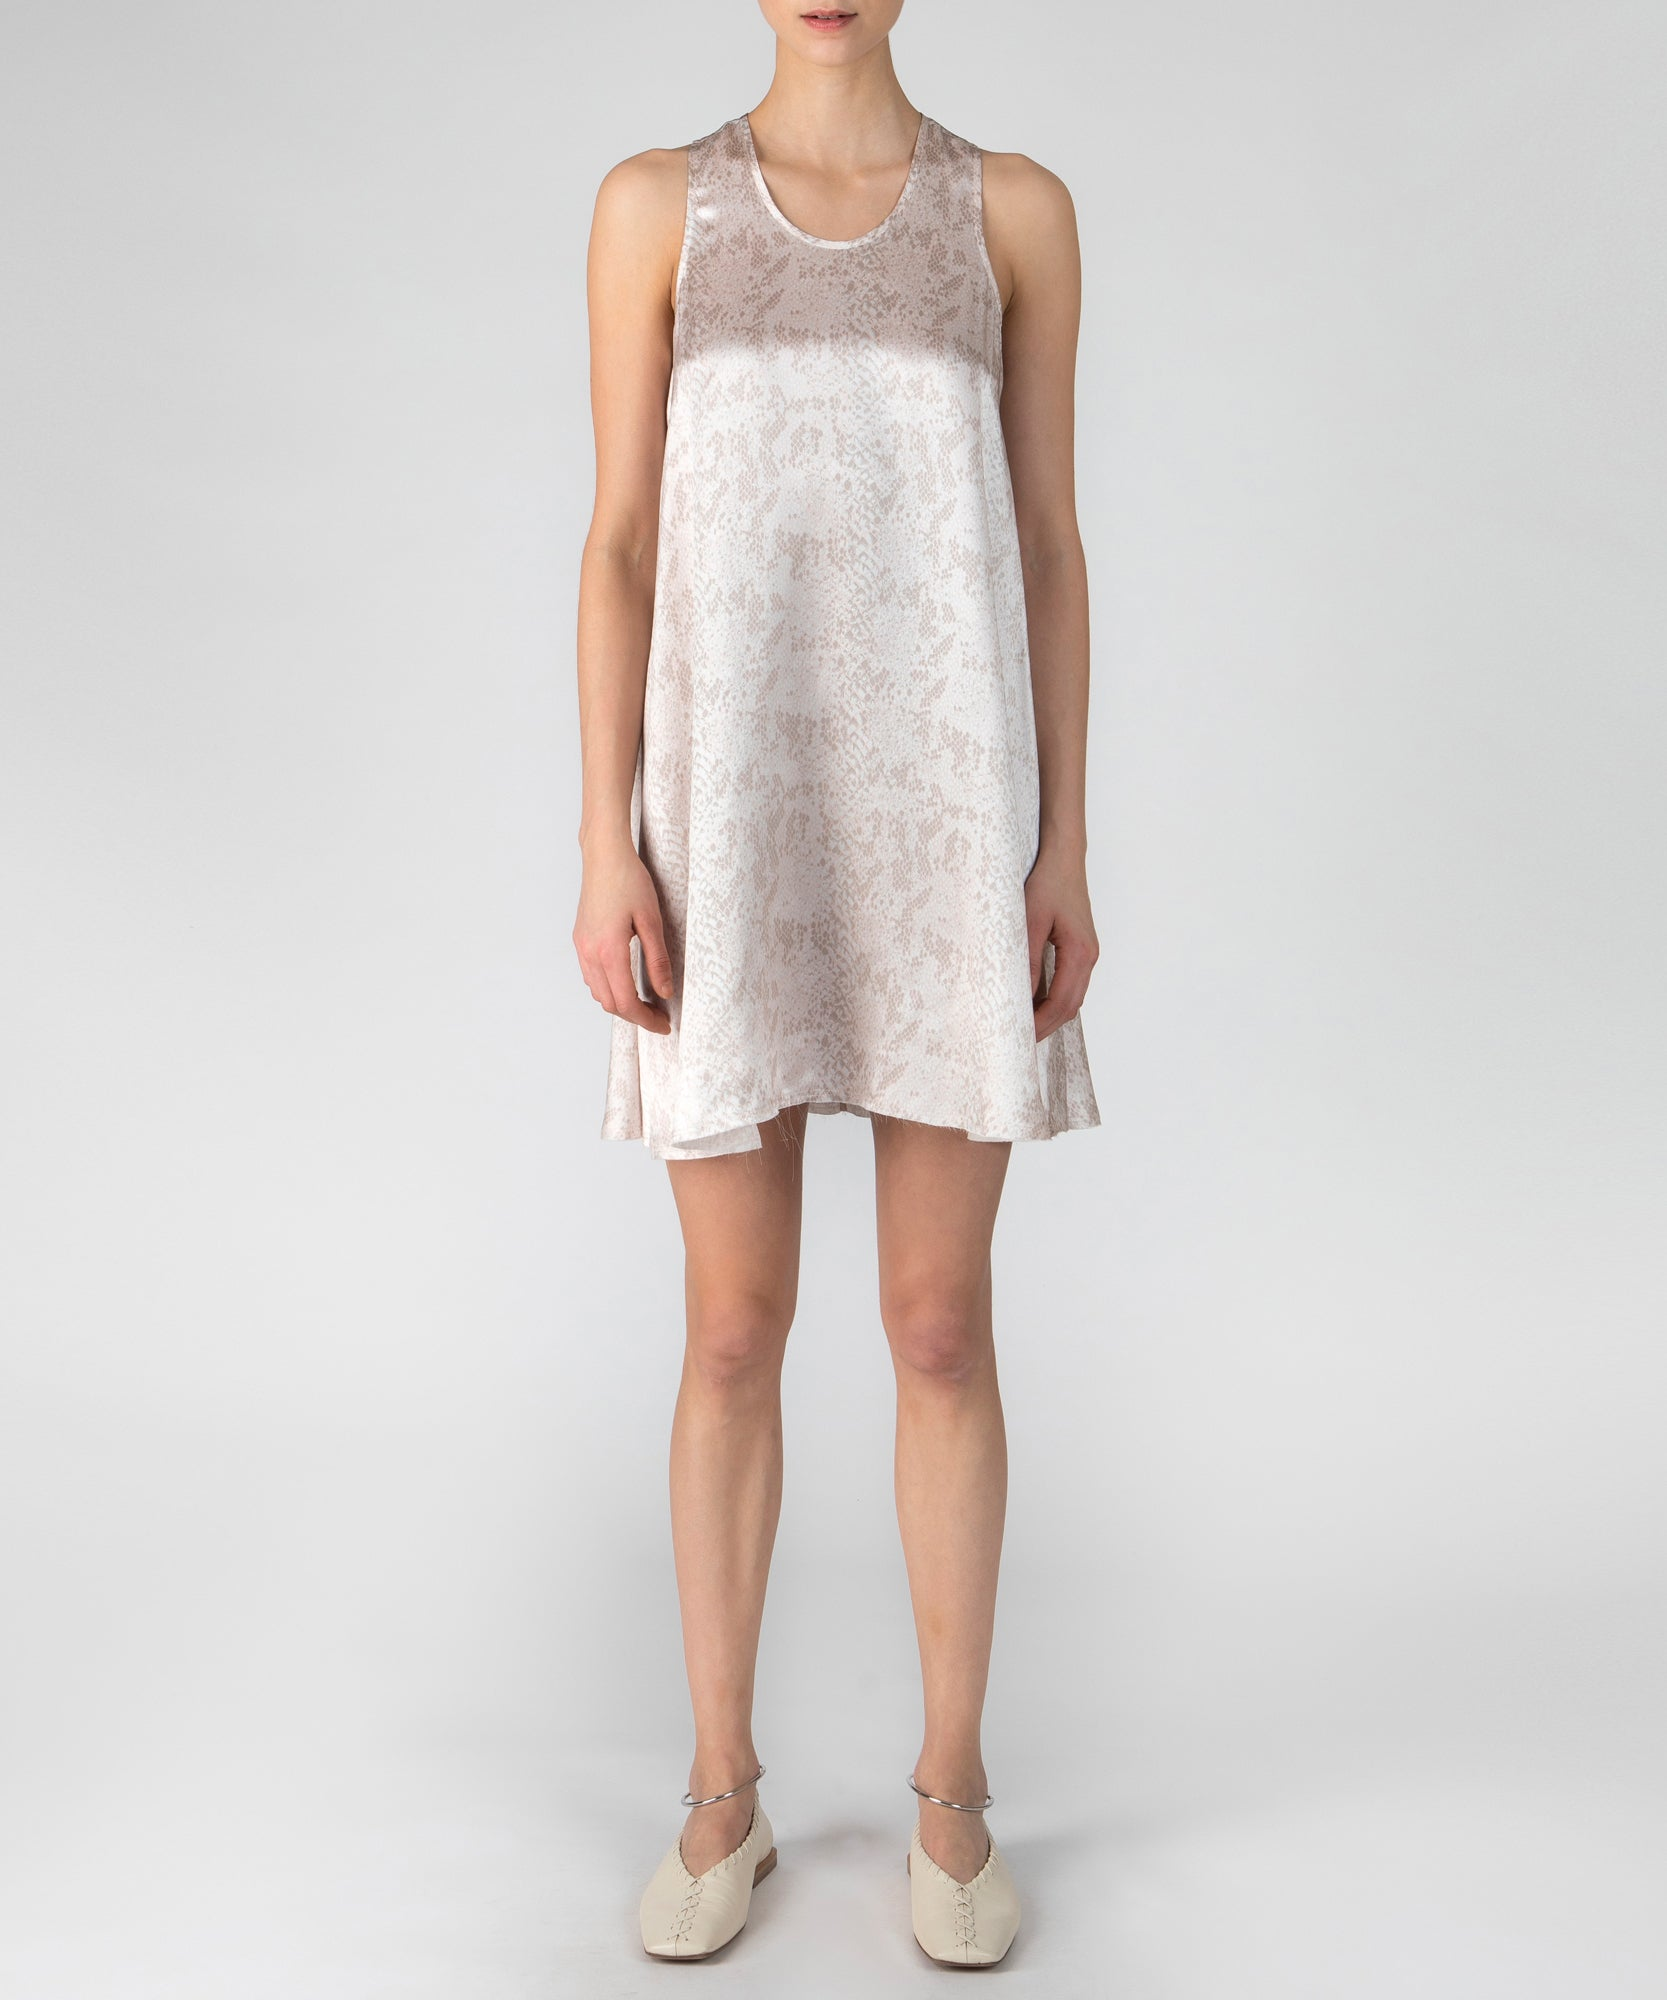 Pale Pink Snake Silk Charmeuse Mini Tank Dress - Women's Casual Dress by ATM Anthony Thomas Melillo